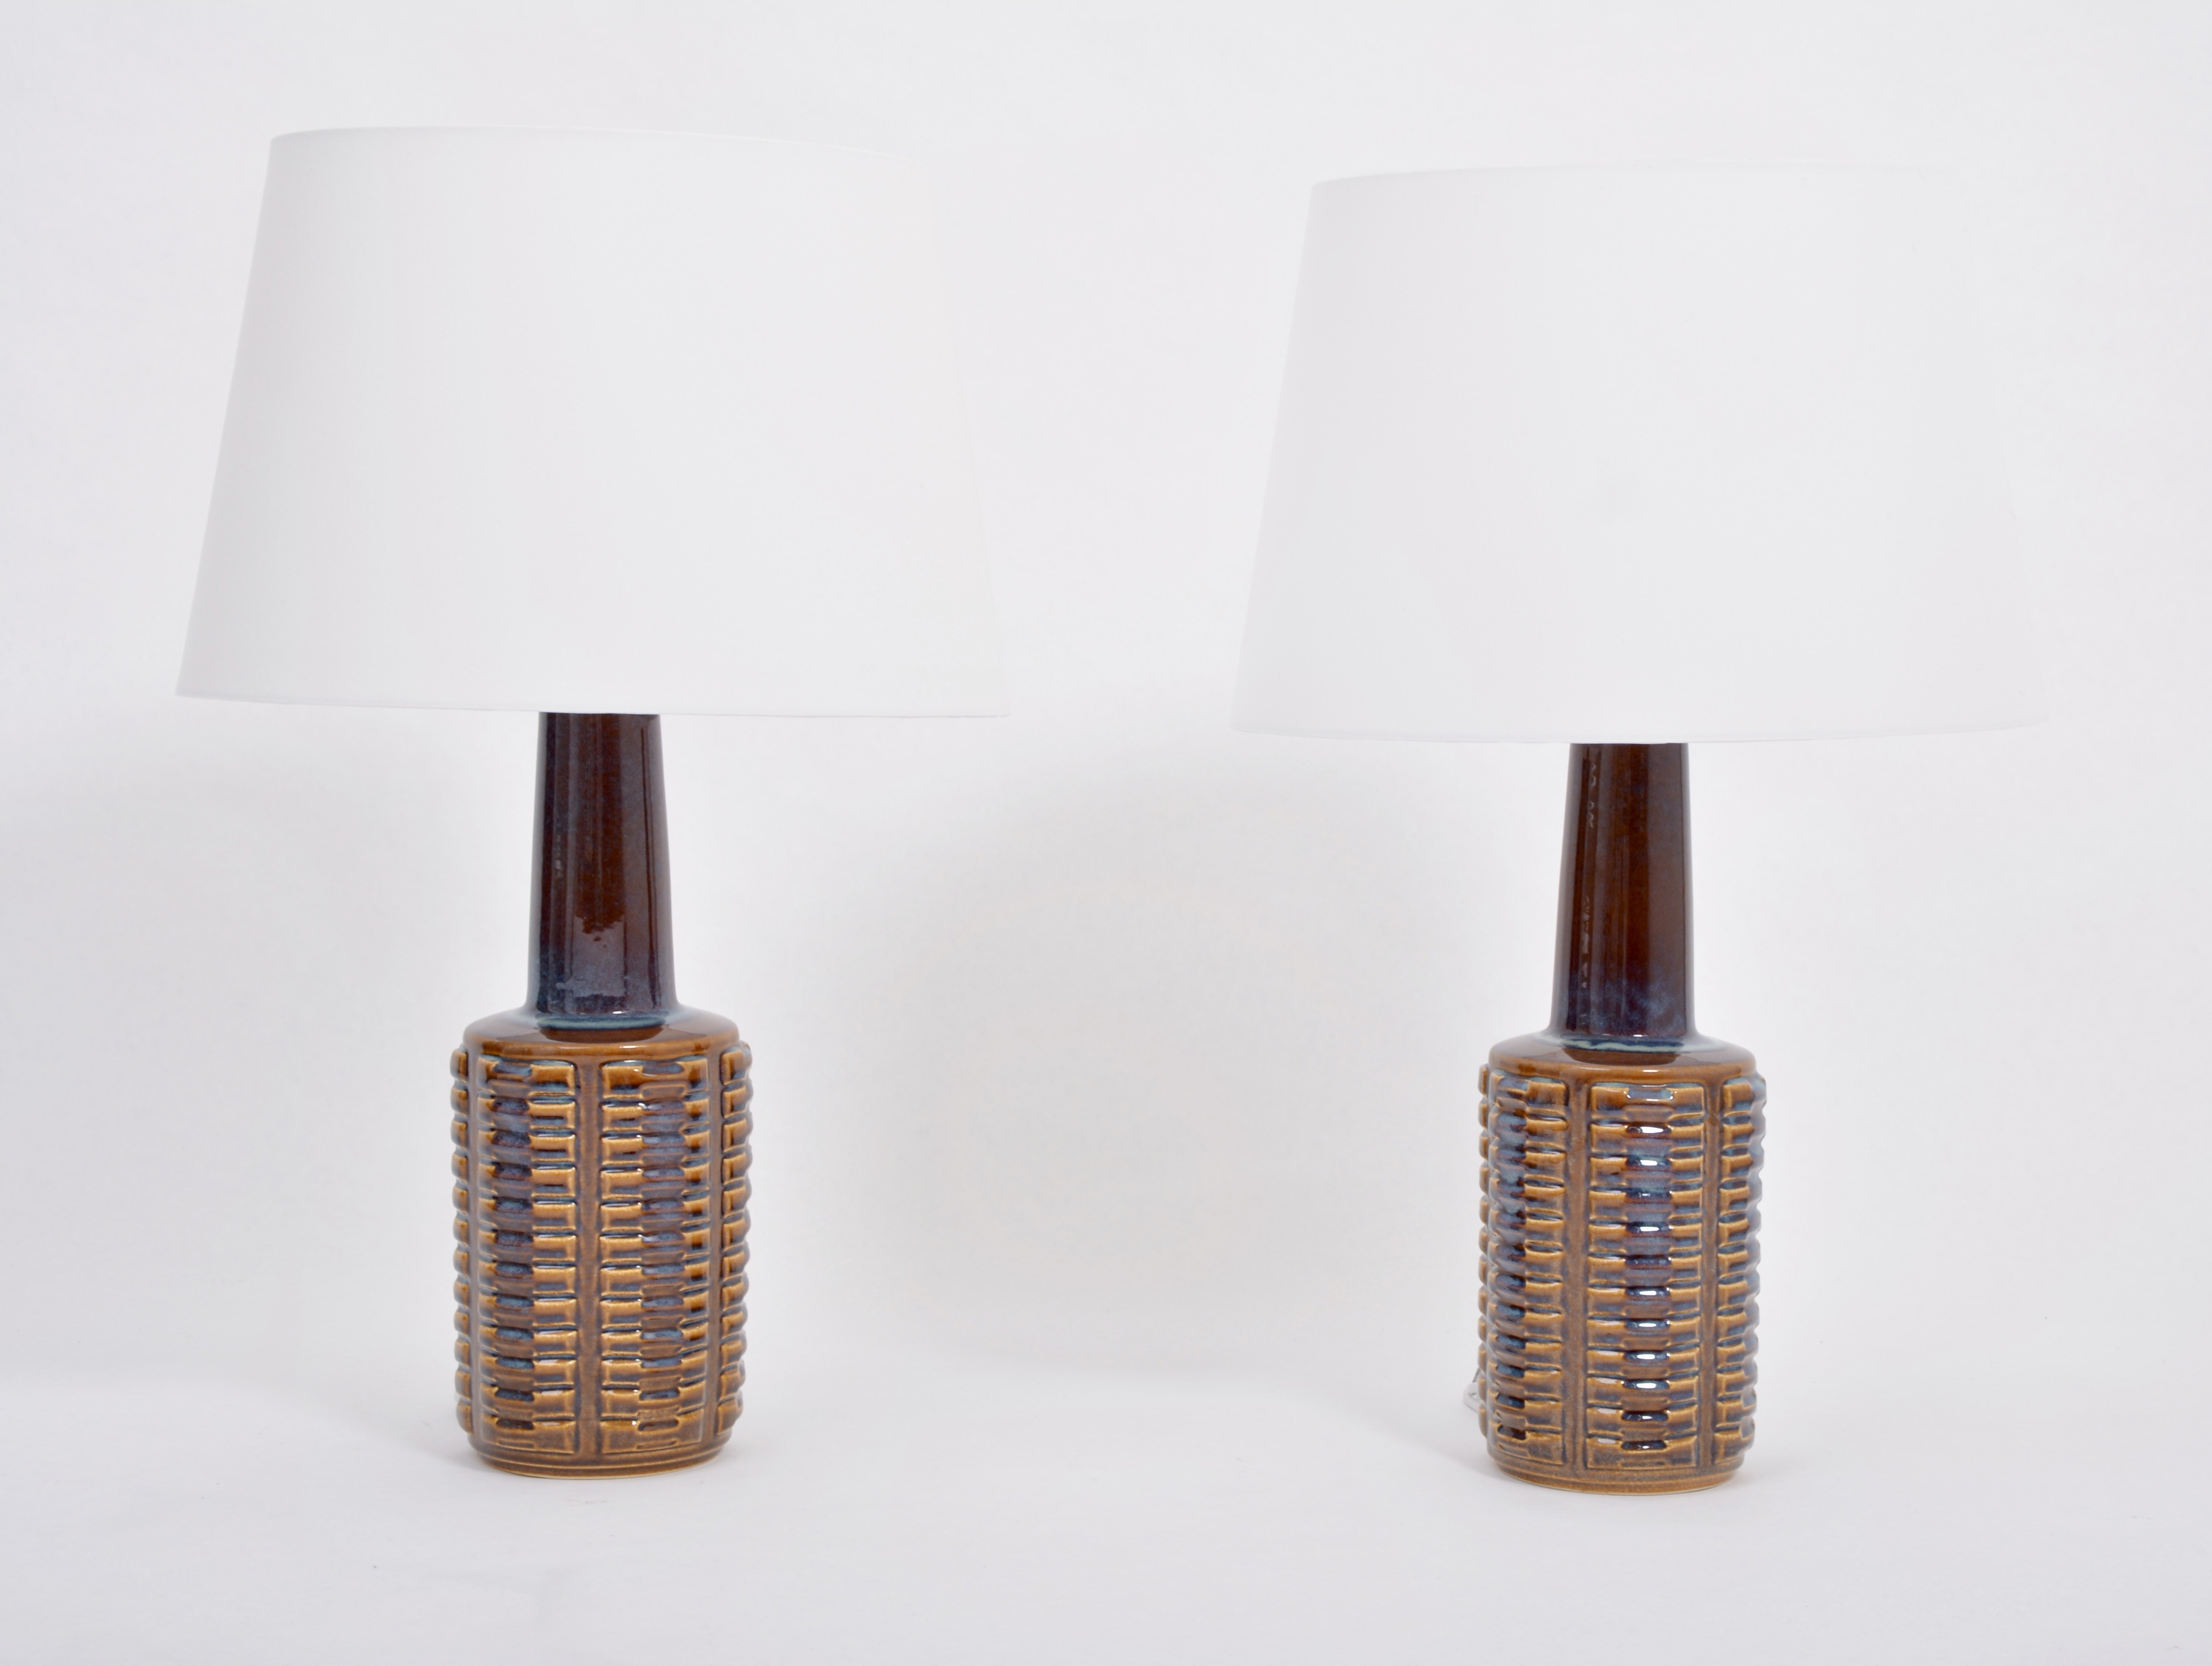 Pair Of Tall Mid Century Modern Ceramic Table Lamps By Einar Johansen For Soholm 138447